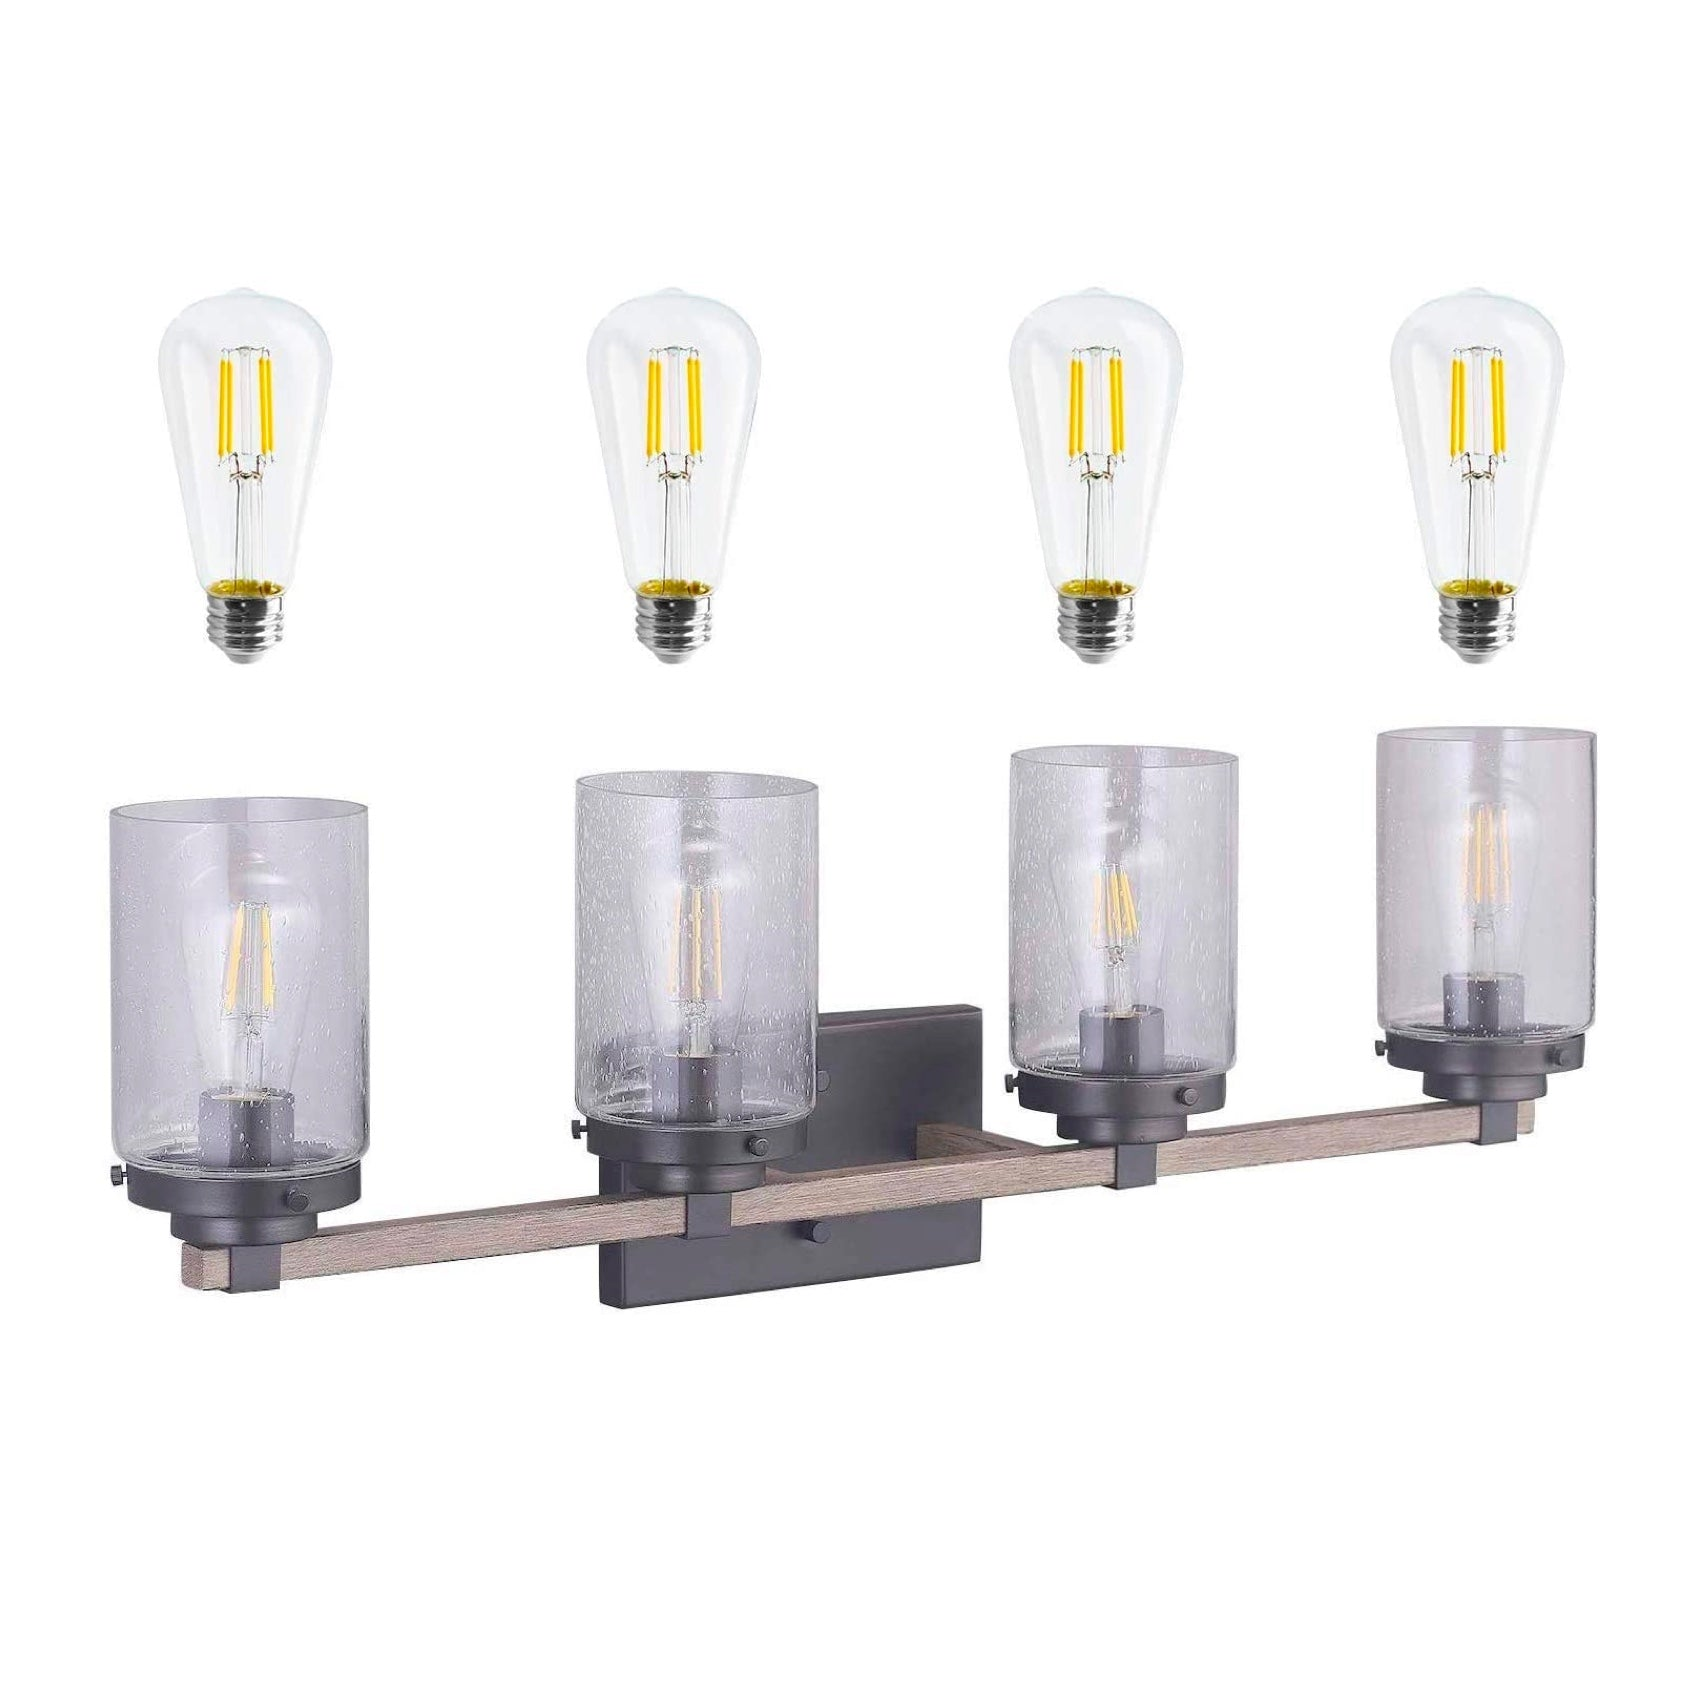 Cloudy Bay Bathroom Vanity Light Fixture 4 Light Wooden Wall Sconce With Bubble Glass Shade Includes 4 Led Filament Bulbs Cloudy Bay Lighting